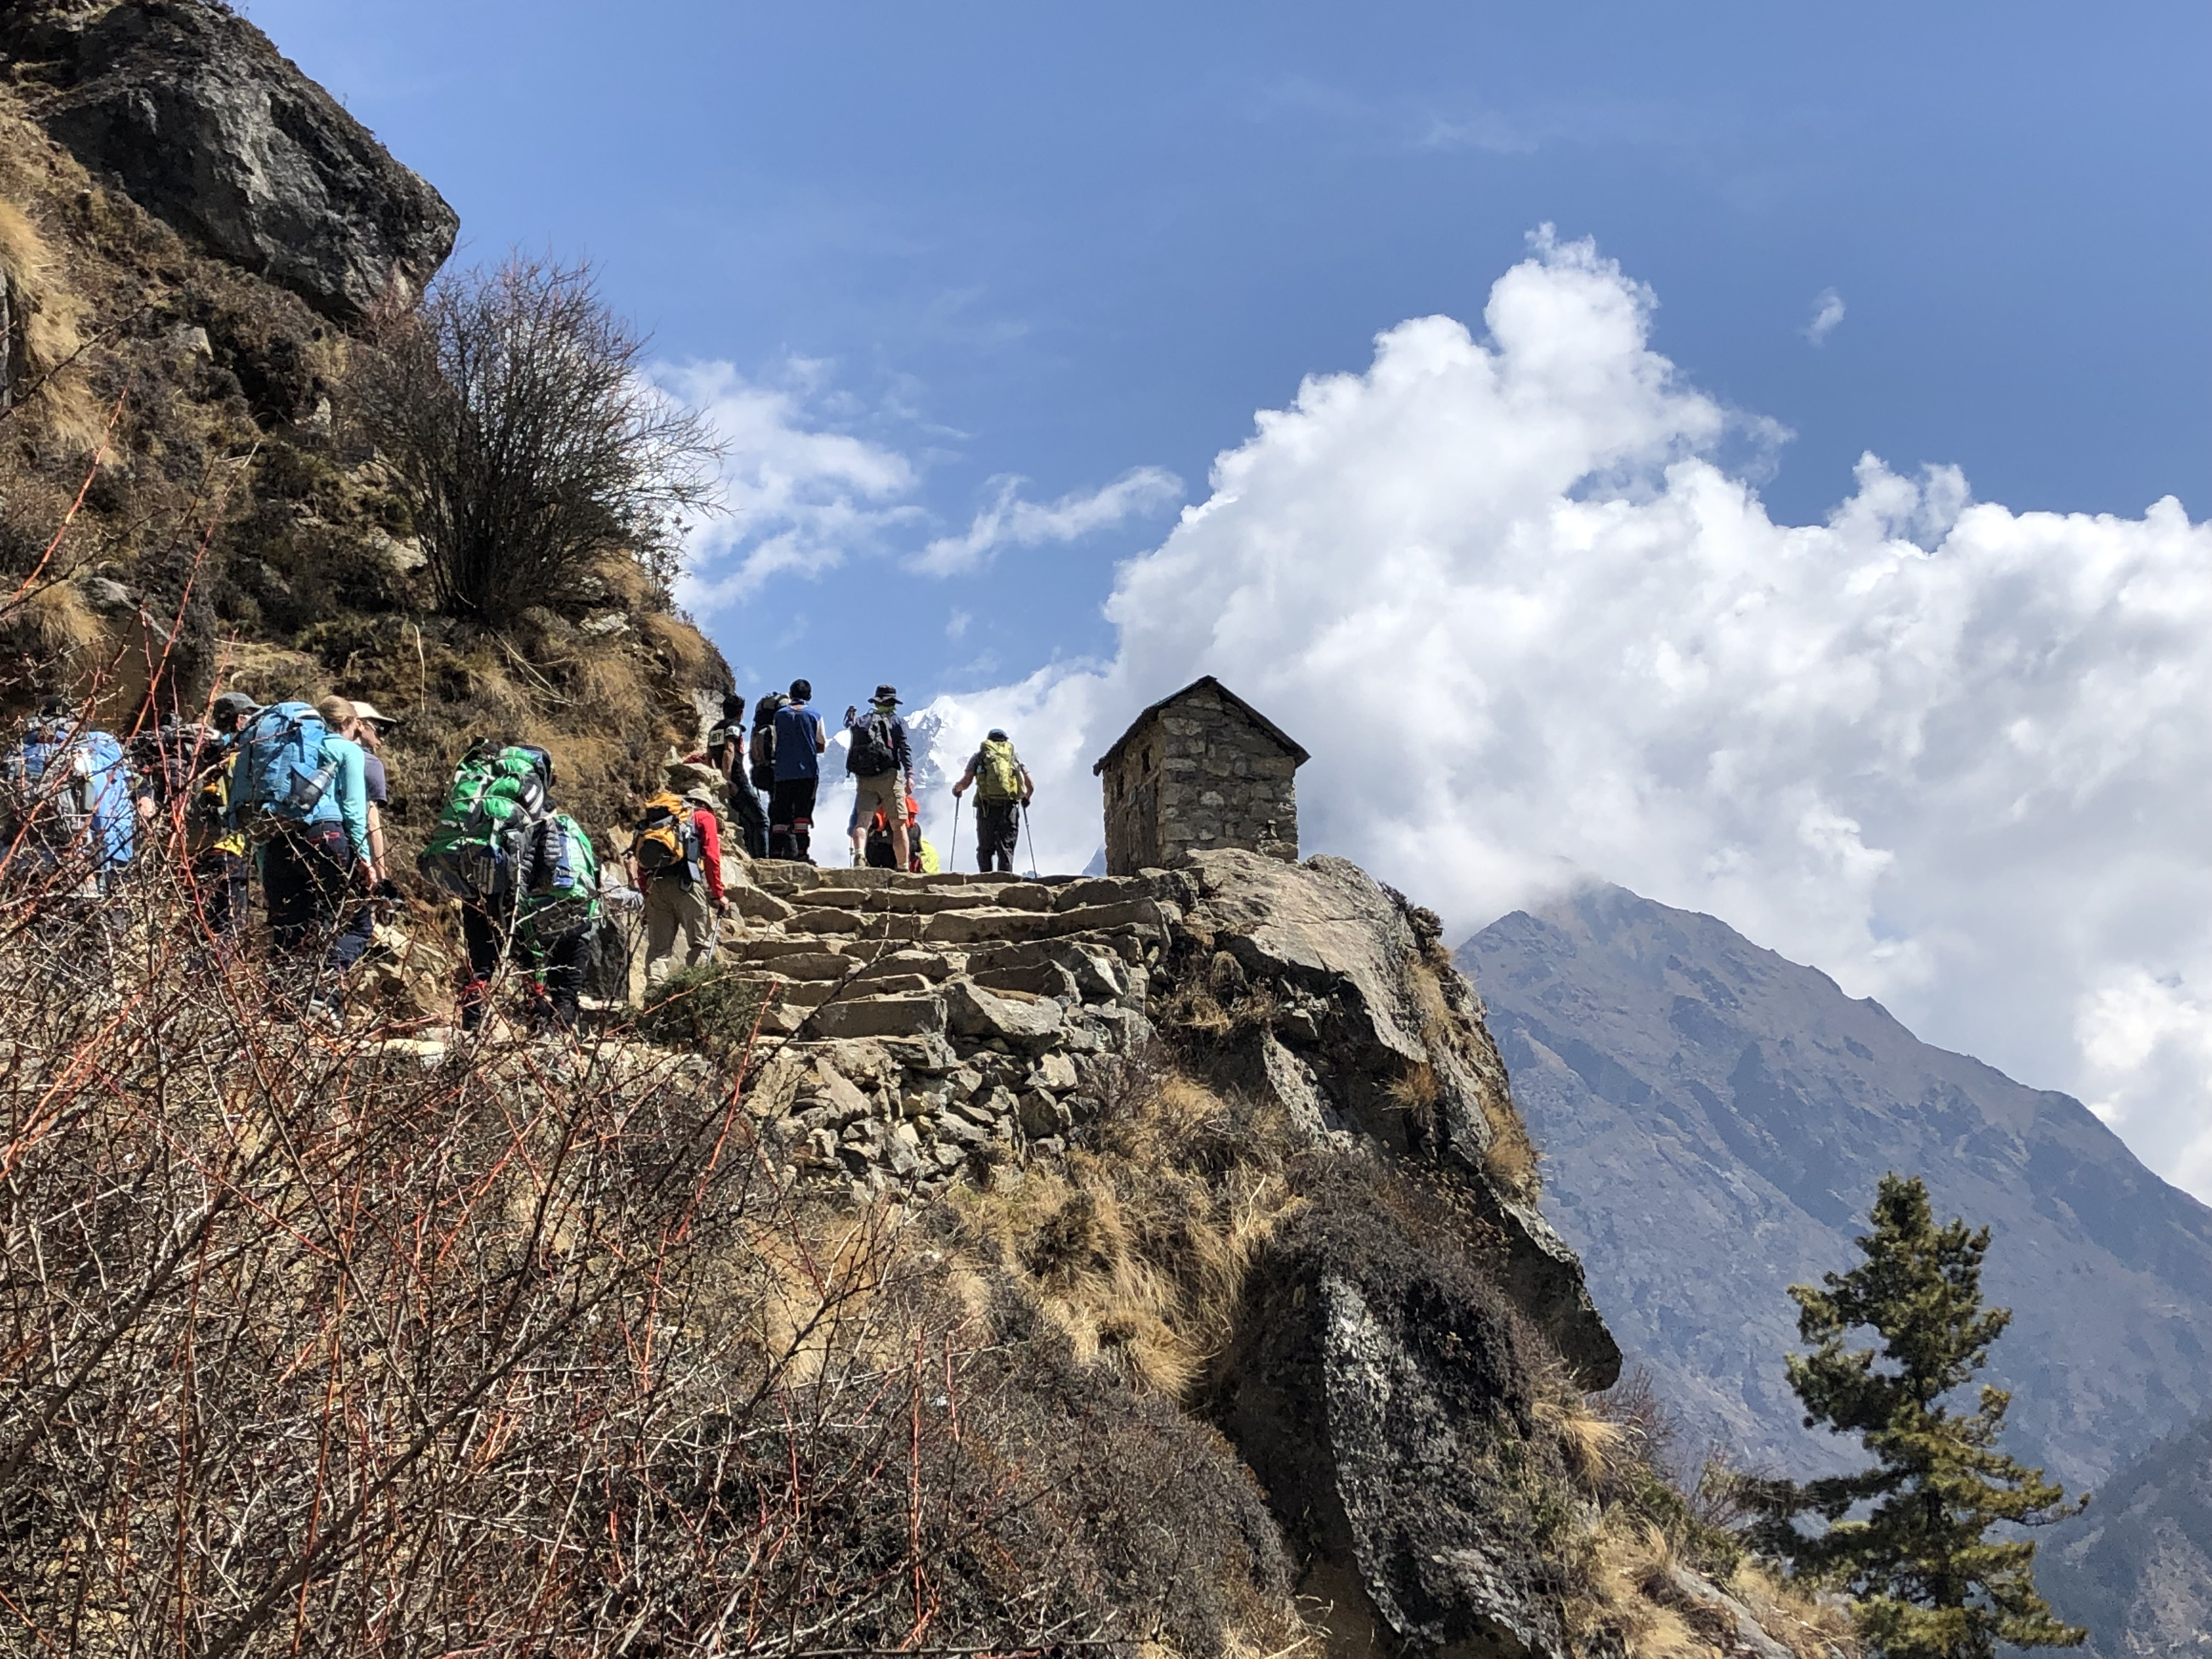 Free download high resolution image - free image free photo free stock image public domain picture -Trekking group on the way to the Everest Base Camp